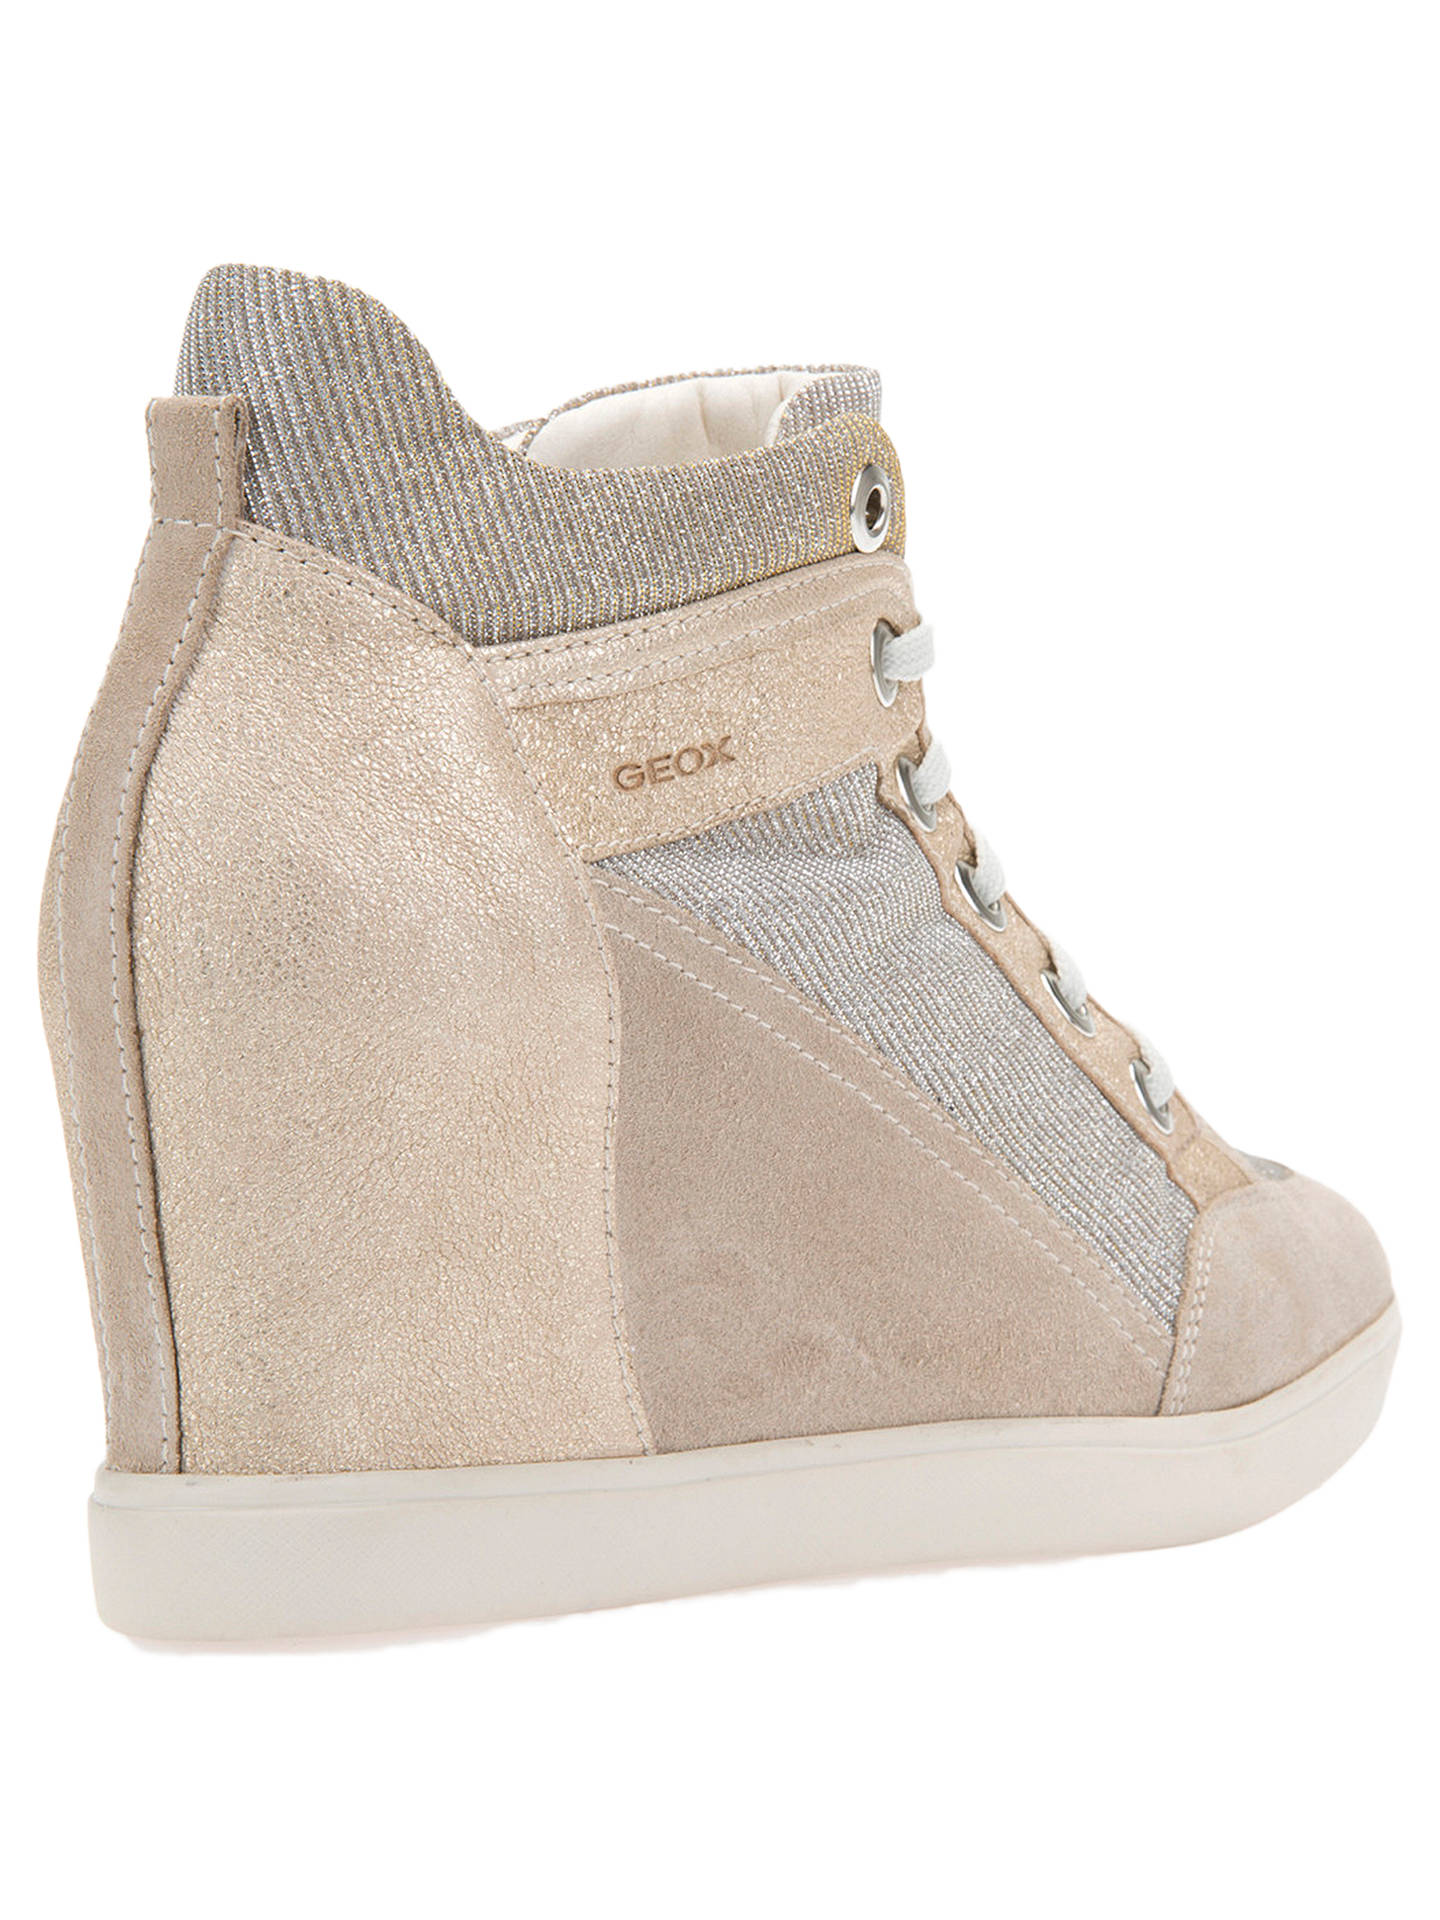 04db9cf23013 Geox Women s Eleni Wedge Heel Trainers at John Lewis   Partners